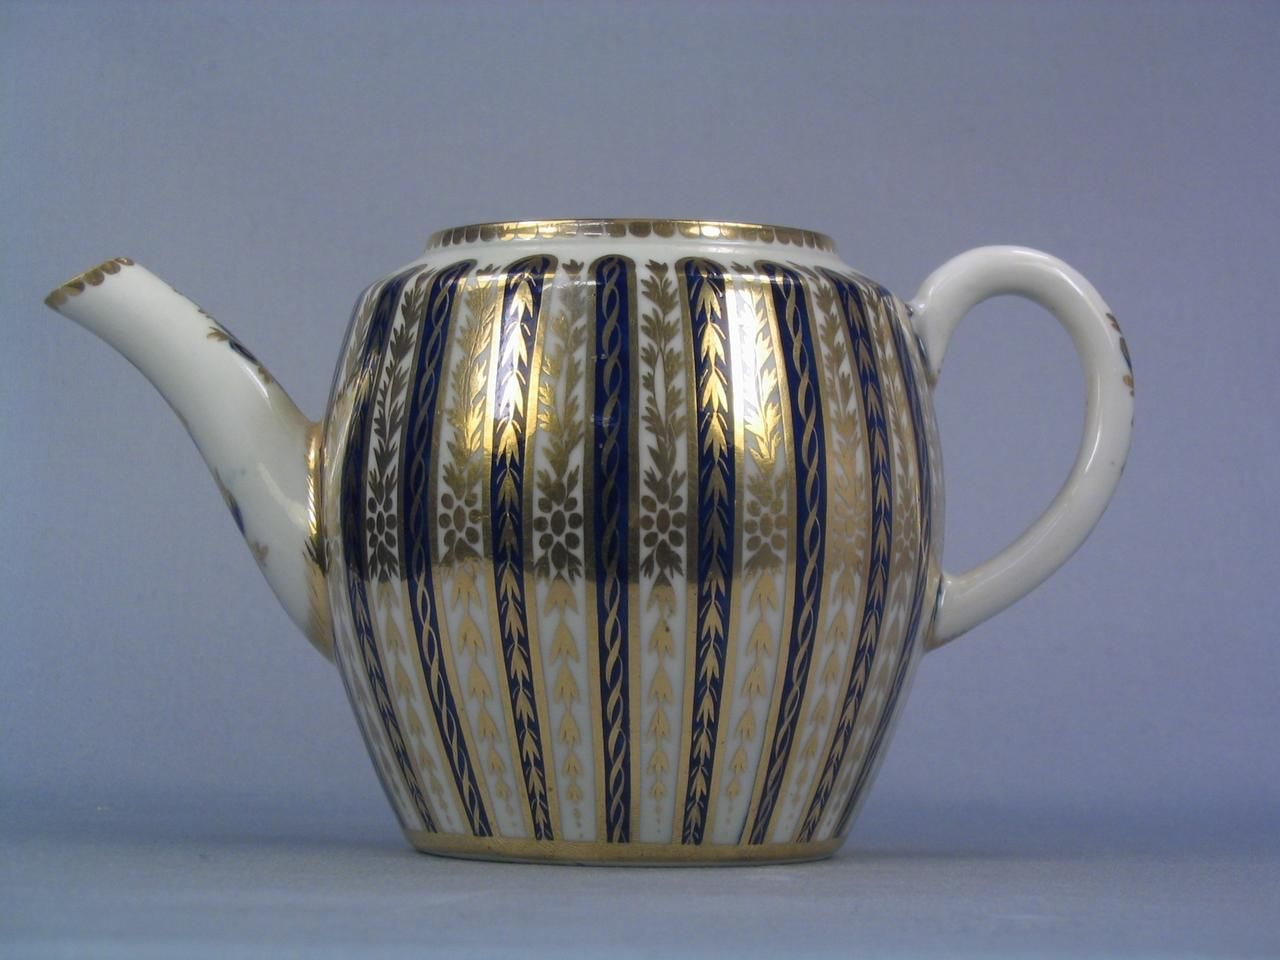 Worcester porcelain teapot; decorated with vertical stripes of mazarine blue and gilt leaves; gilt highlights  Materials: porcelain  Measurements: 82 (height)  Accession number: NWHCM : 1992.226.1516